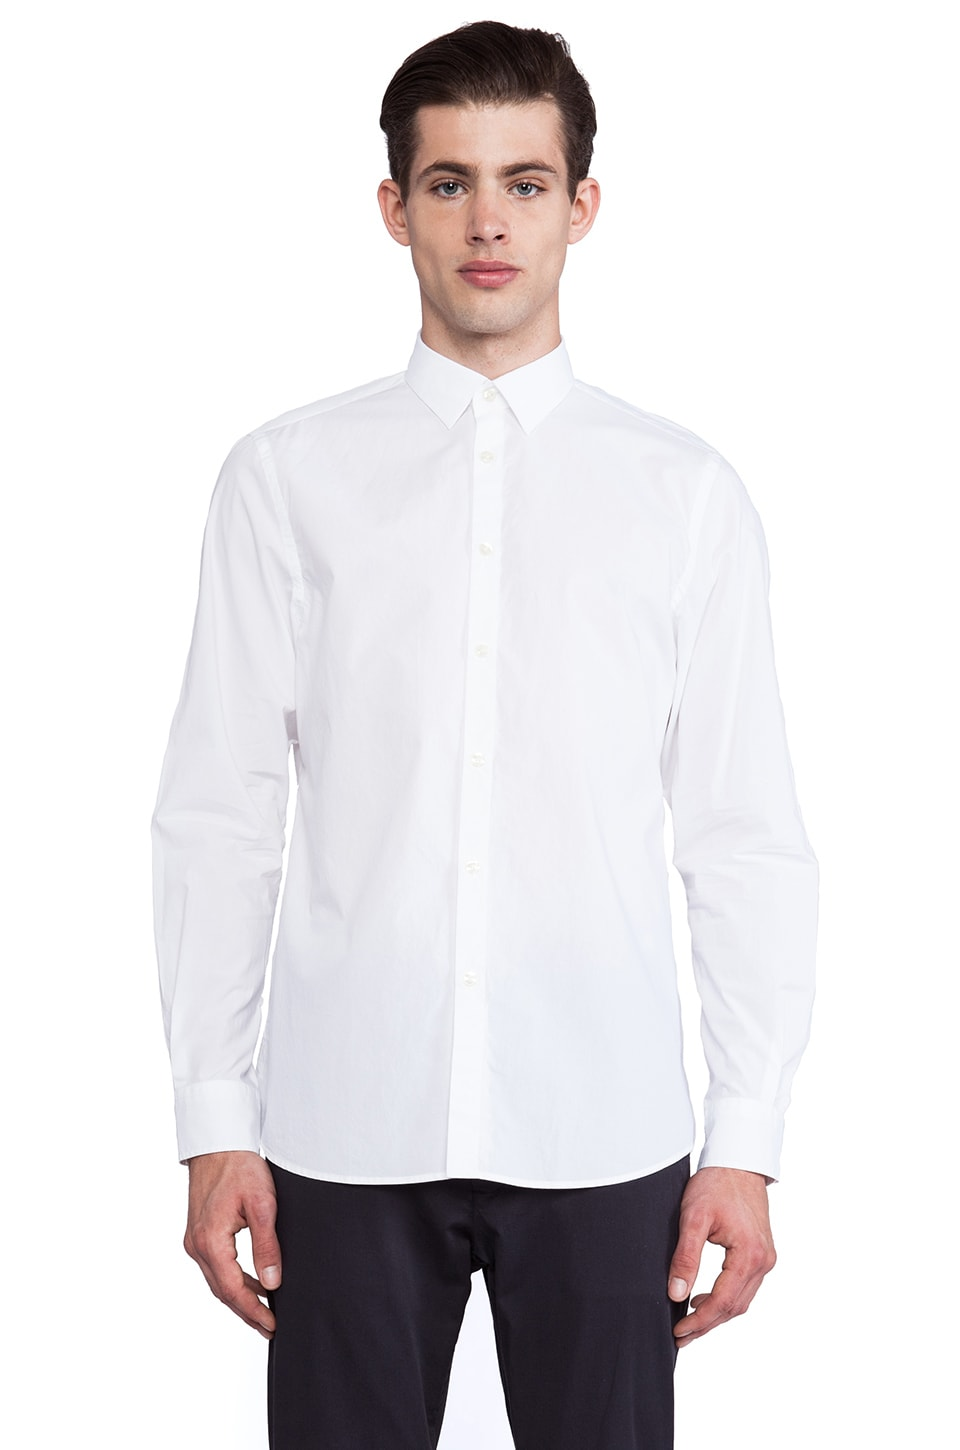 Hope Kagan Sharp Shirt in White